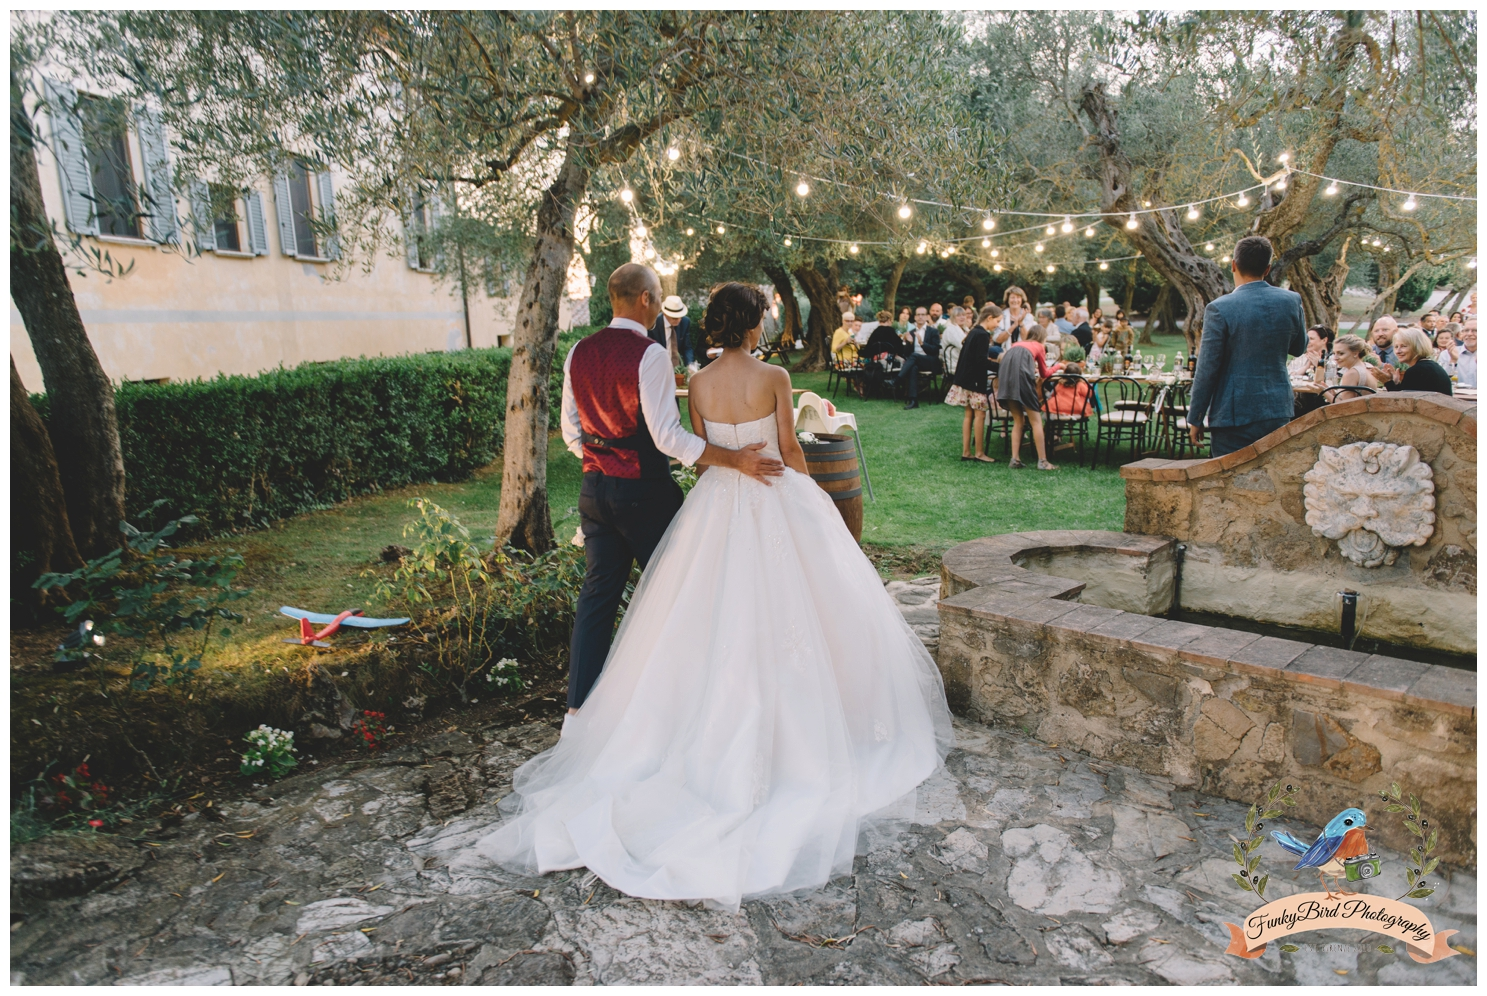 Wedding_Photographer_Tuscany_Italy_0050.jpg